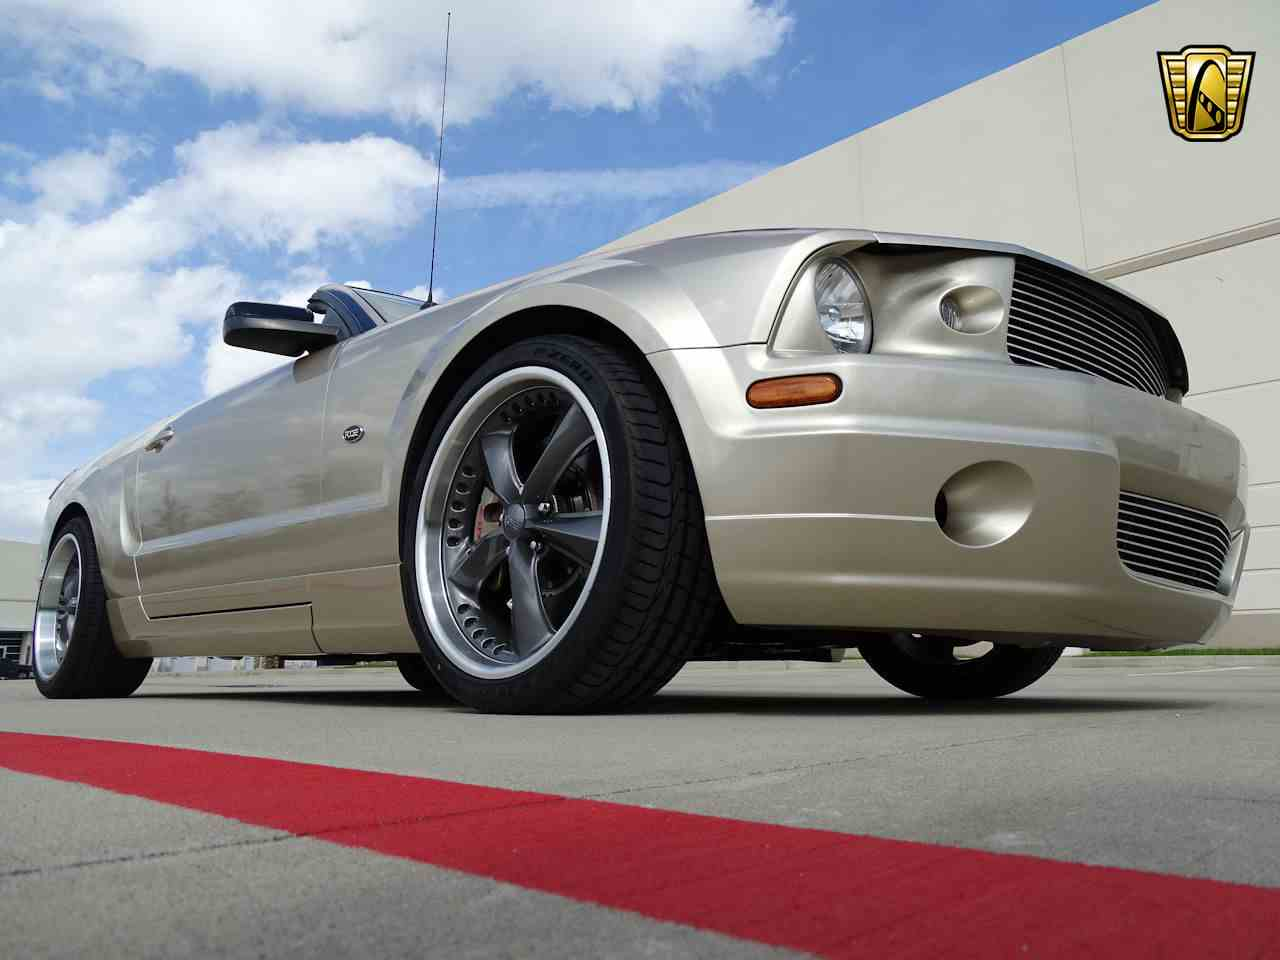 Large Picture of 2008 Ford Mustang located in Texas - $39,995.00 Offered by Gateway Classic Cars - Houston - MZGA